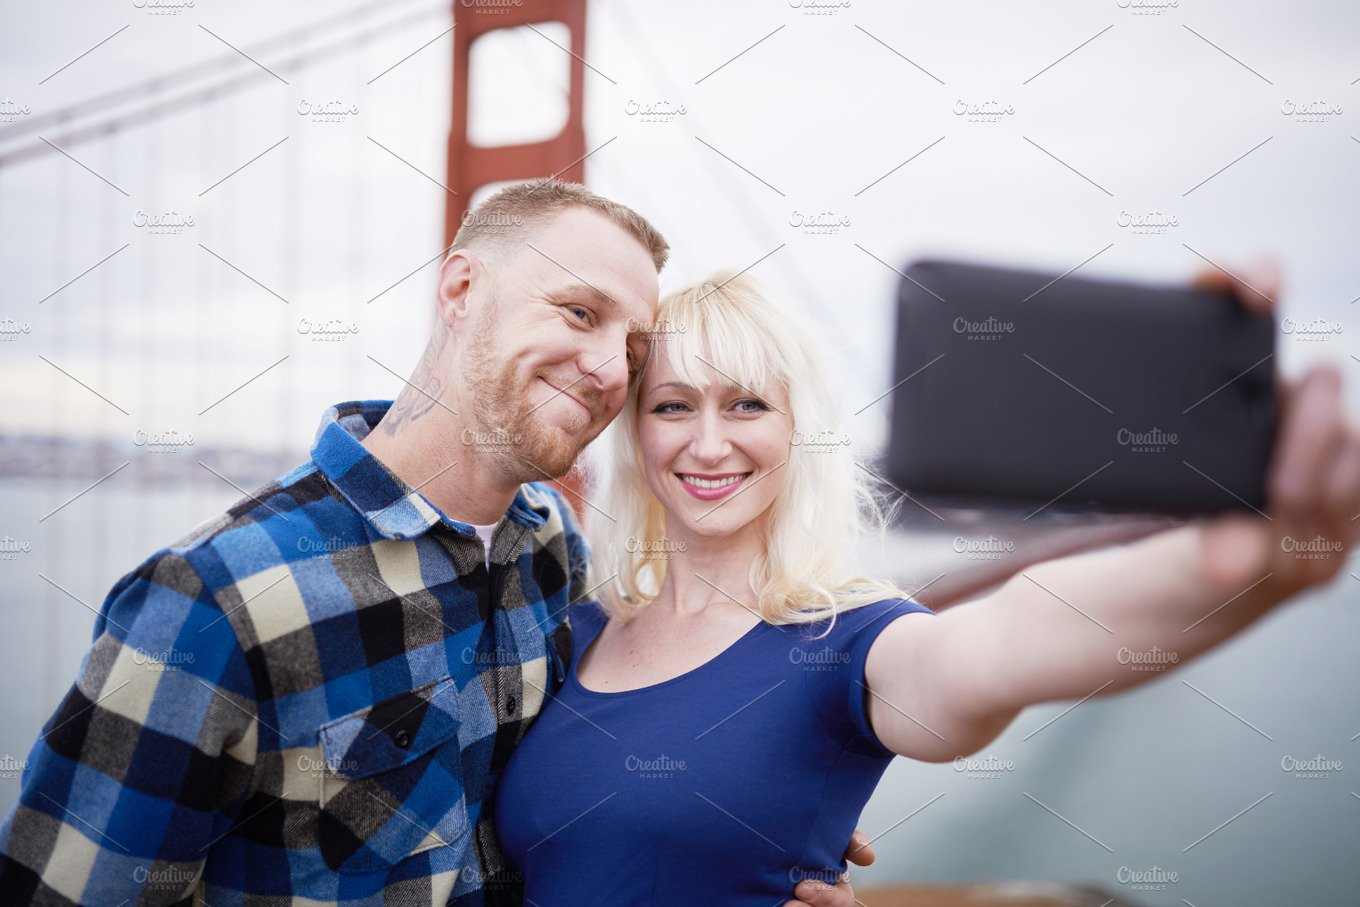 Romantic Couple Posing For Selfies People Images Creative Market